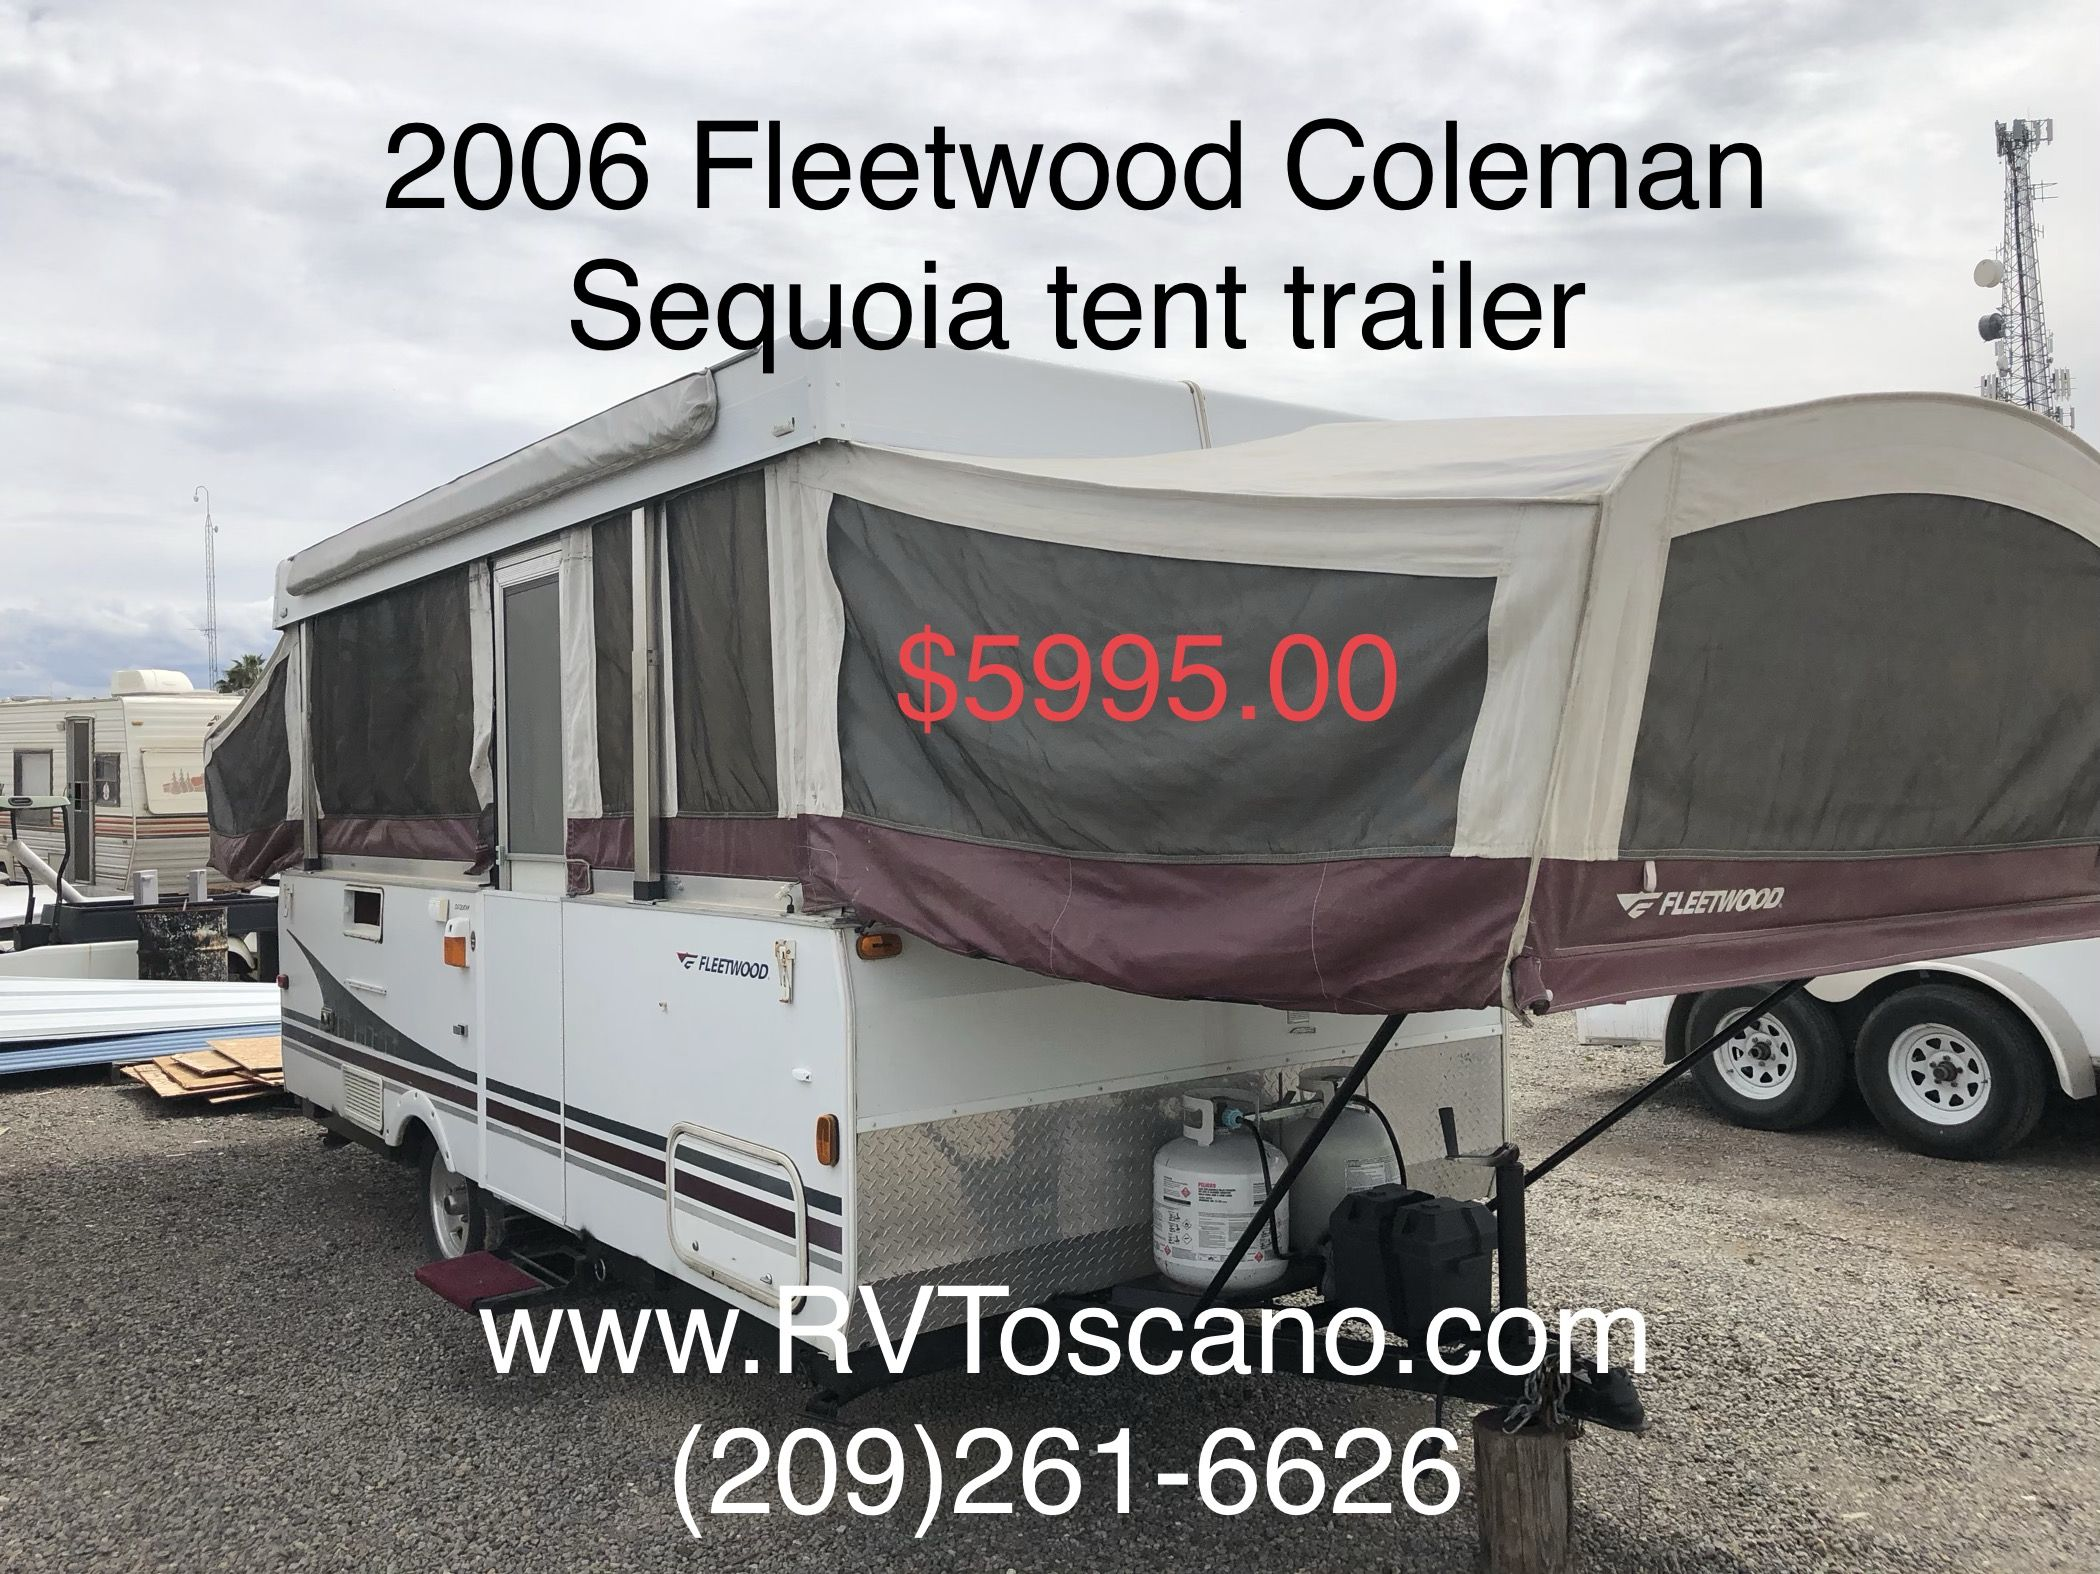 sold /deposit call me Great for the first time camper who's